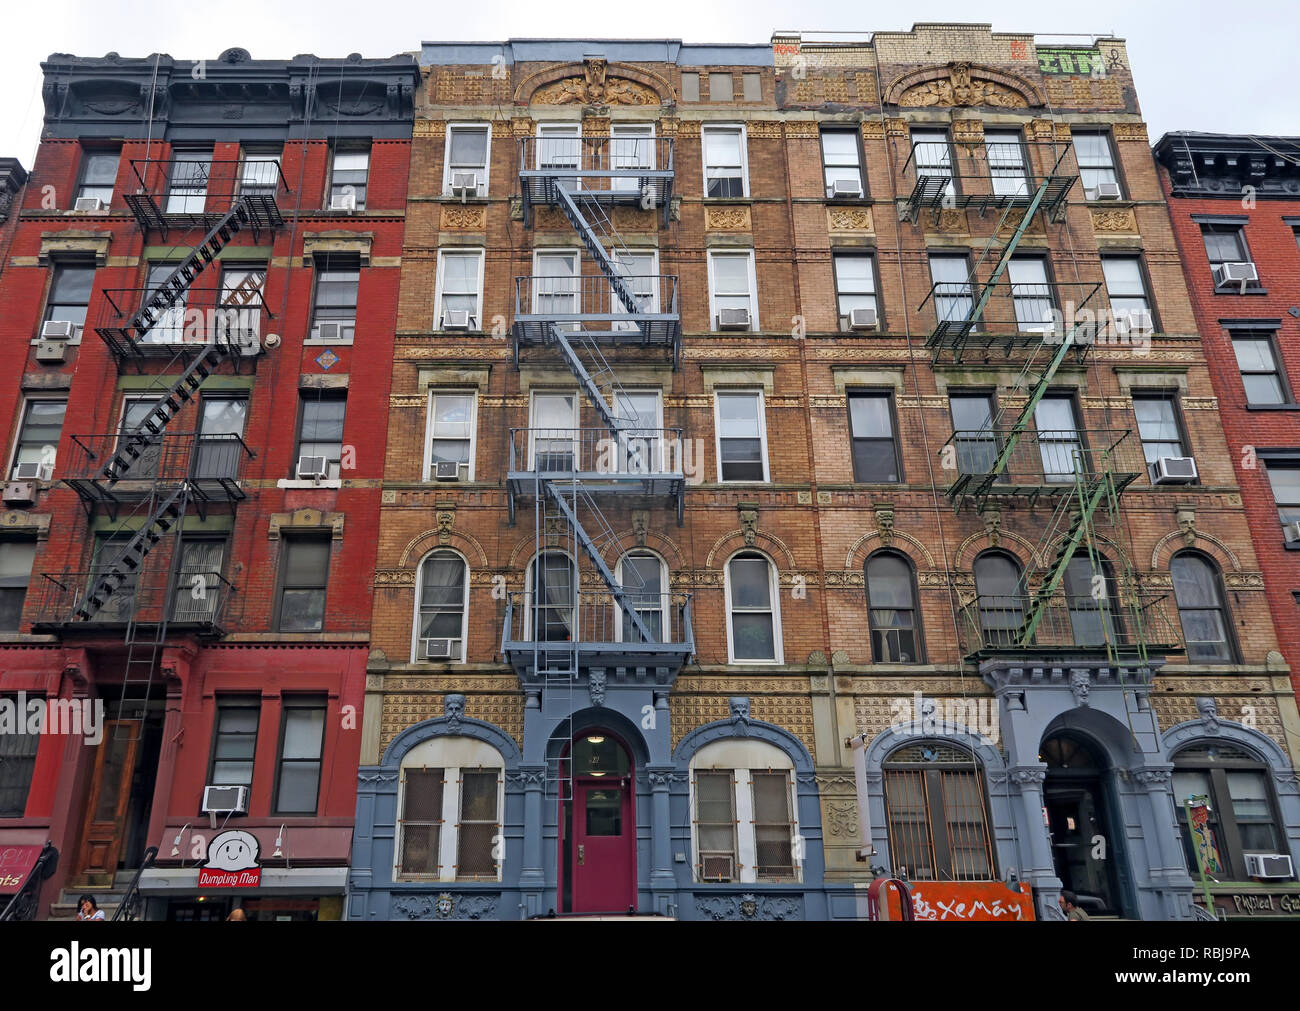 Tenements at St Marks Place, East Village, Manhatten, New York City, used in Led Zeppelin Physical Graffiti album - Stock Image